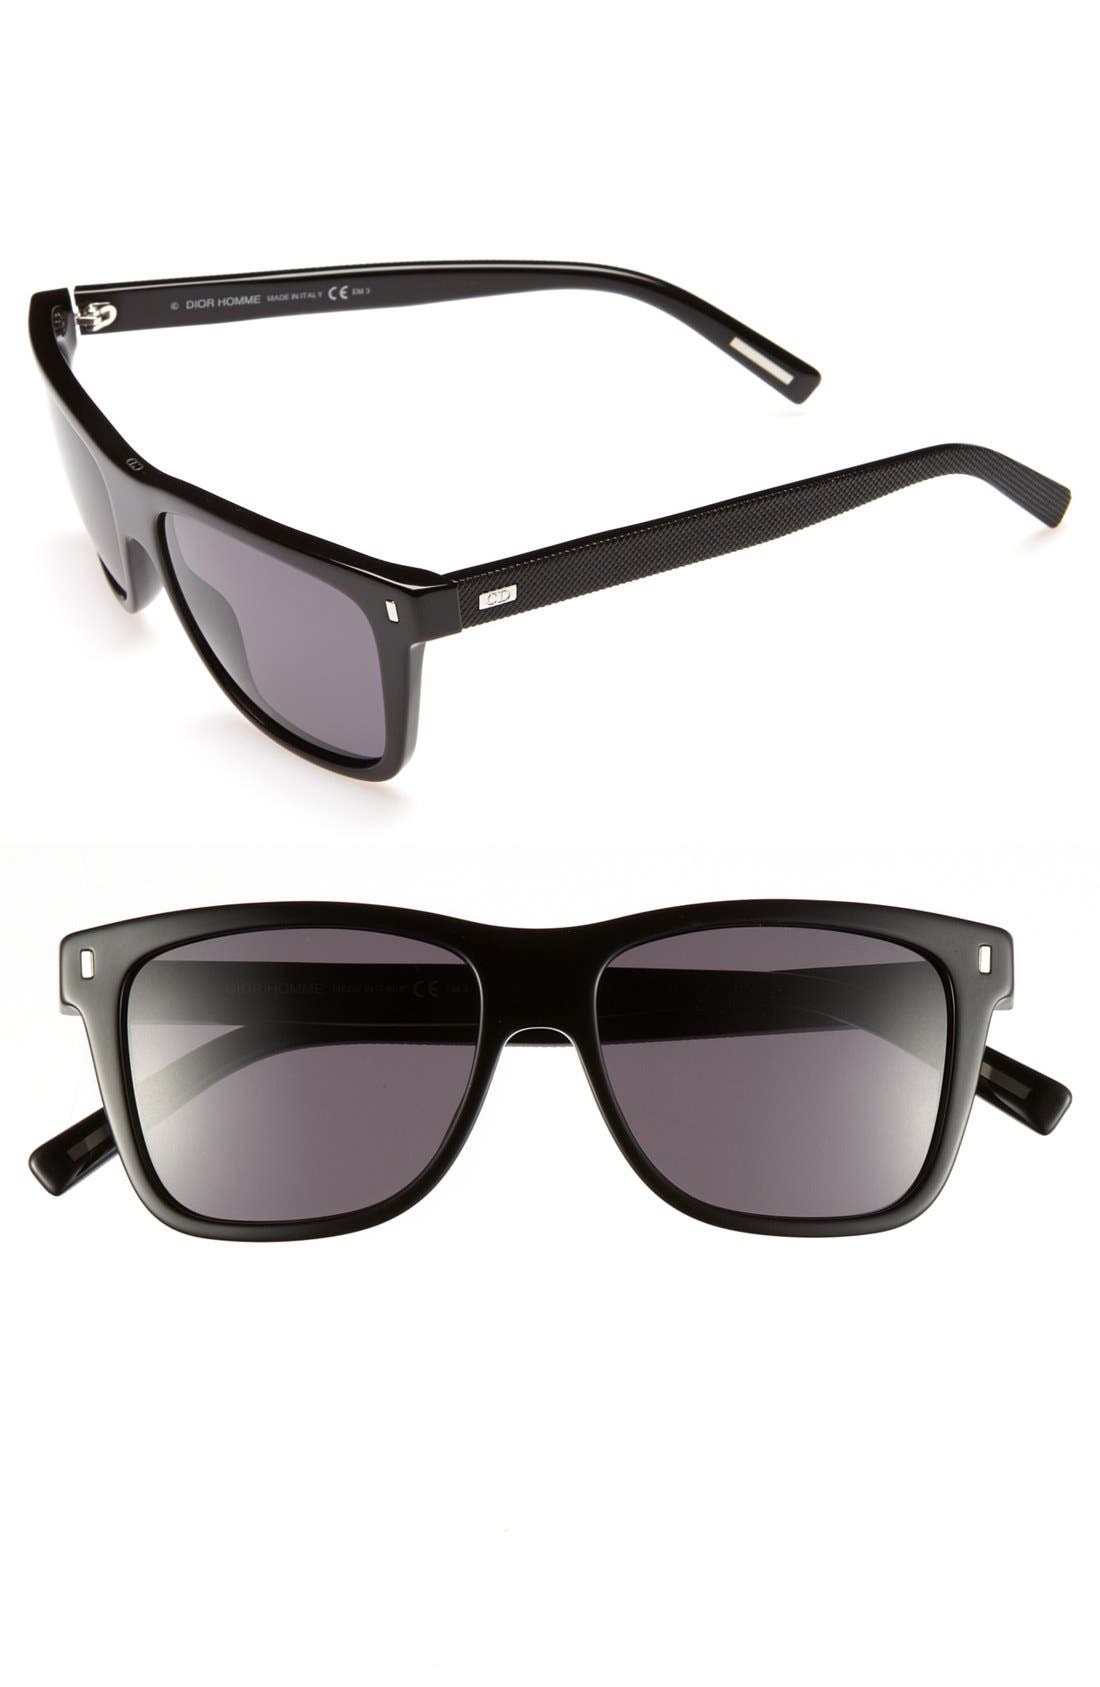 Alternate Image 1 Selected - Dior Homme '154S' 54mm Sunglasses